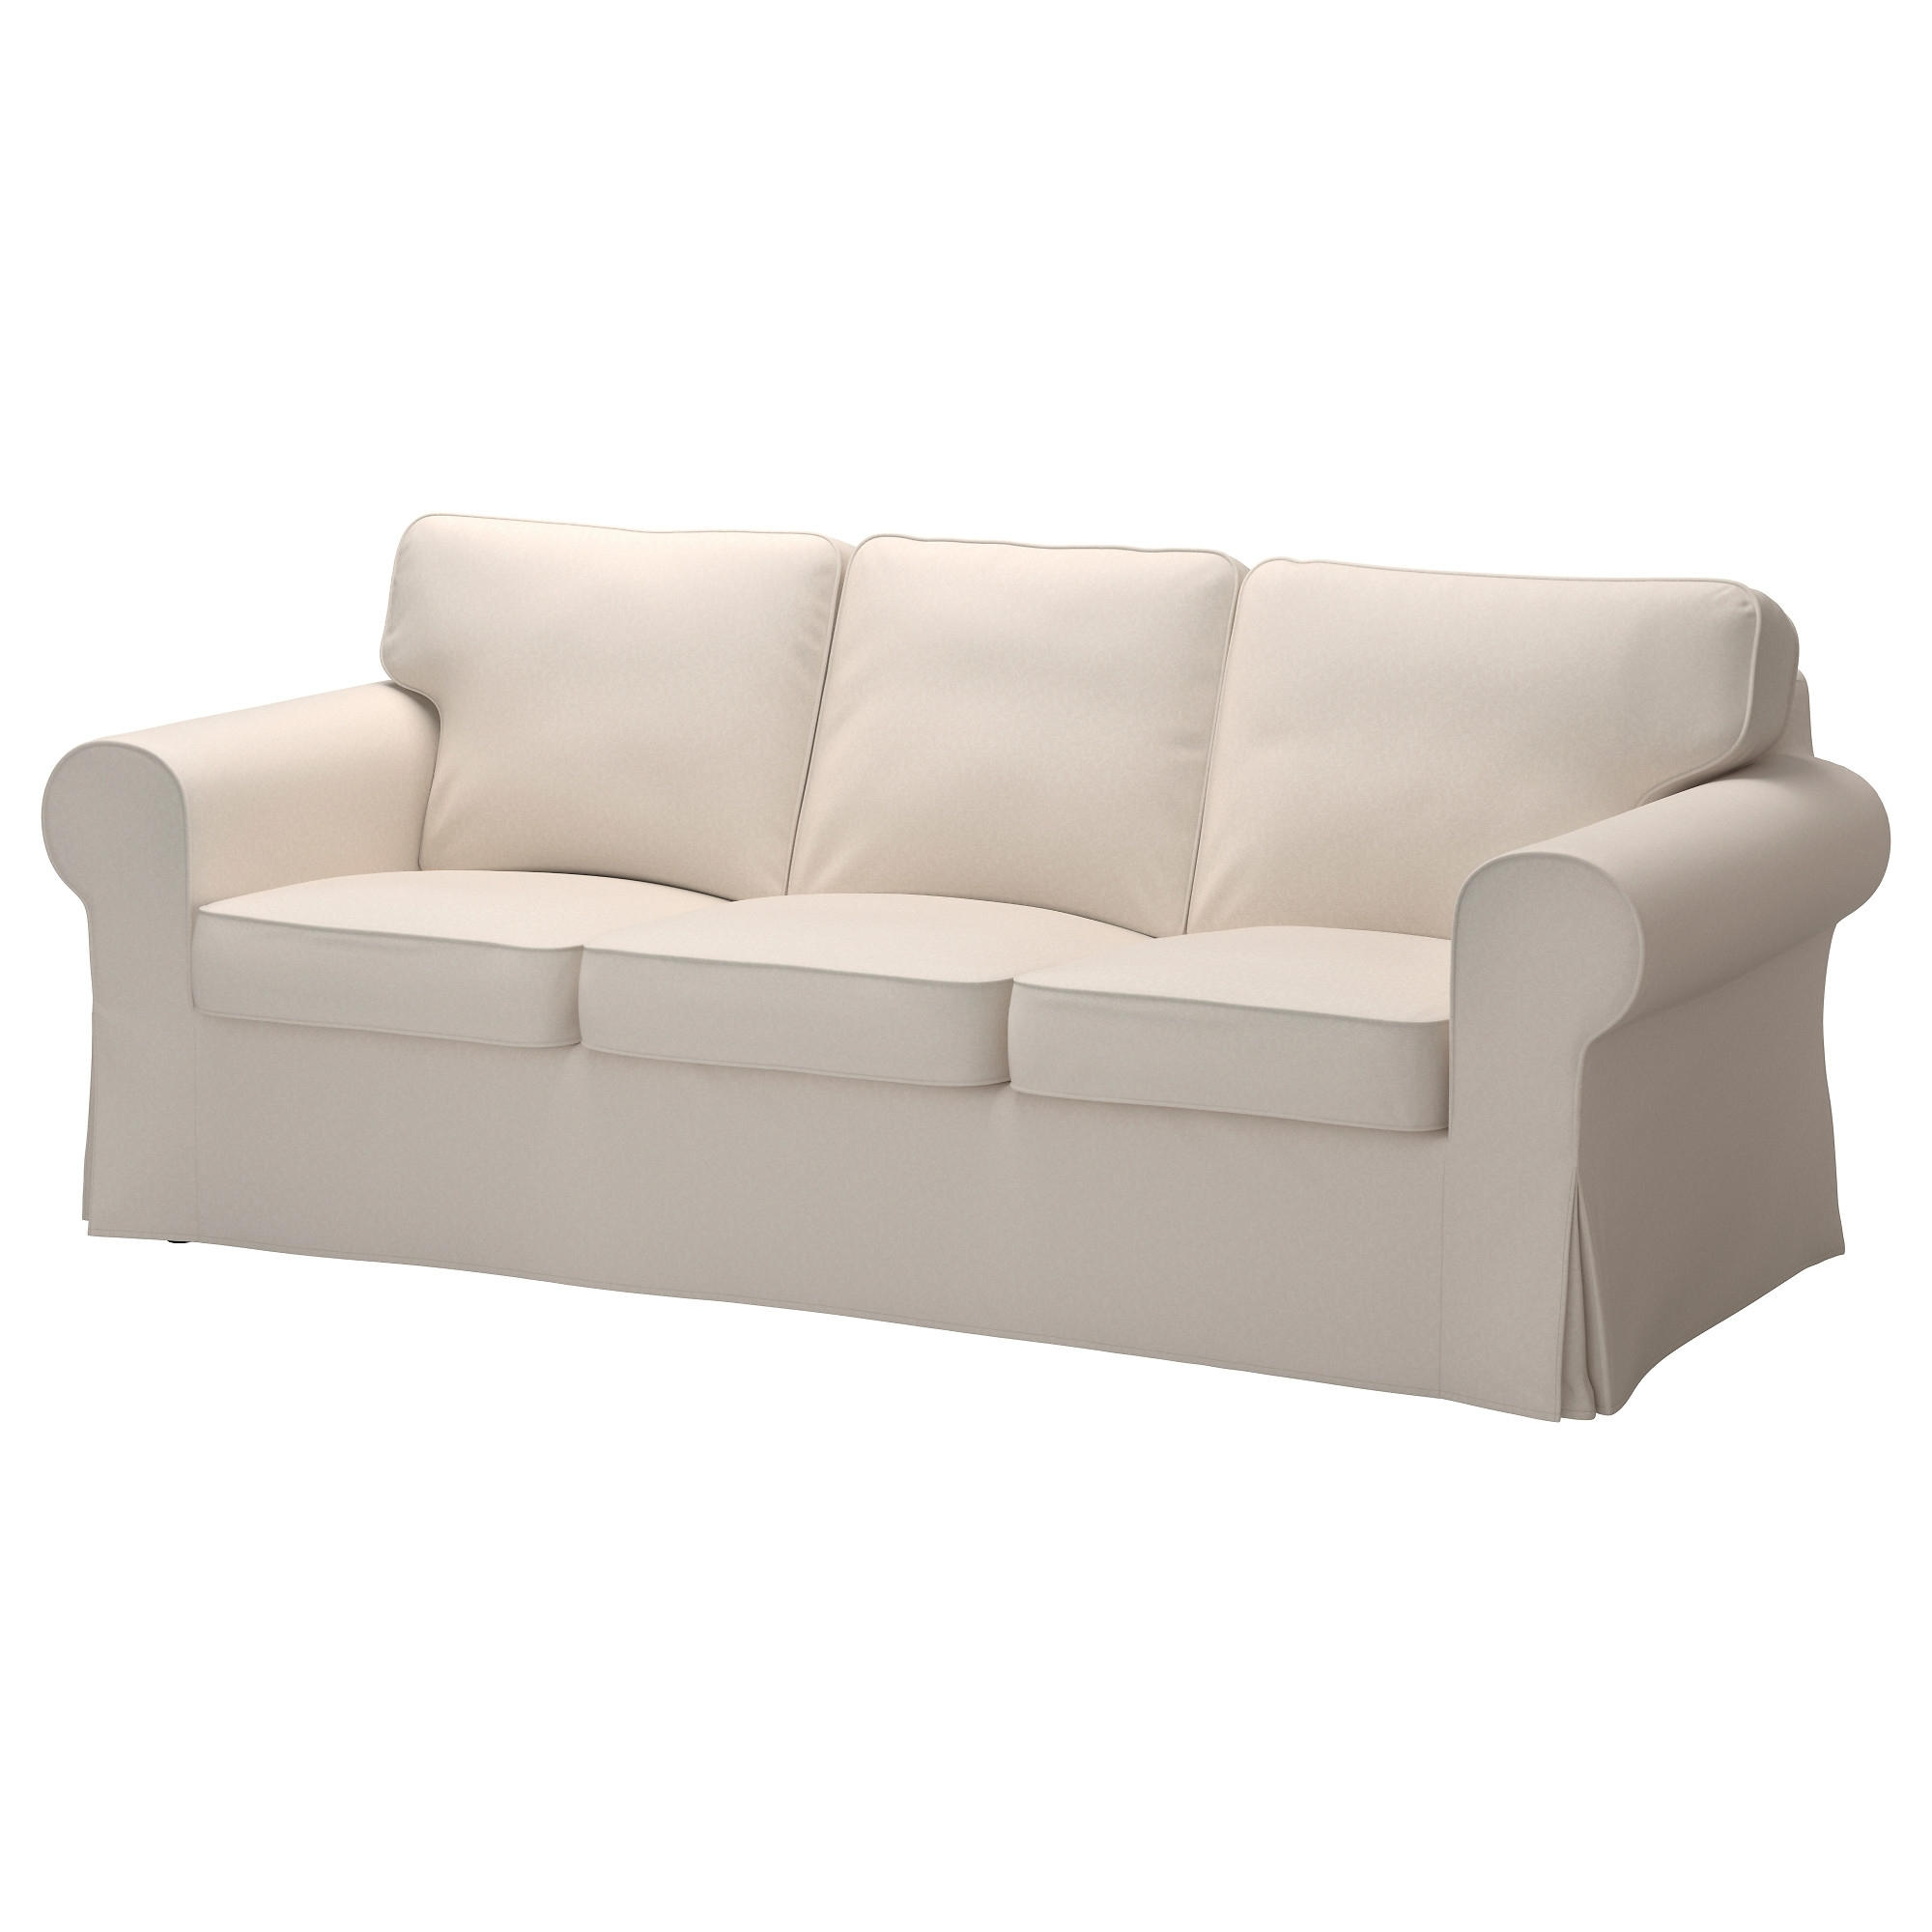 Ektorp Sofa - Lofallet Beige - Ikea with Ikea Small Sofas (Image 2 of 10)